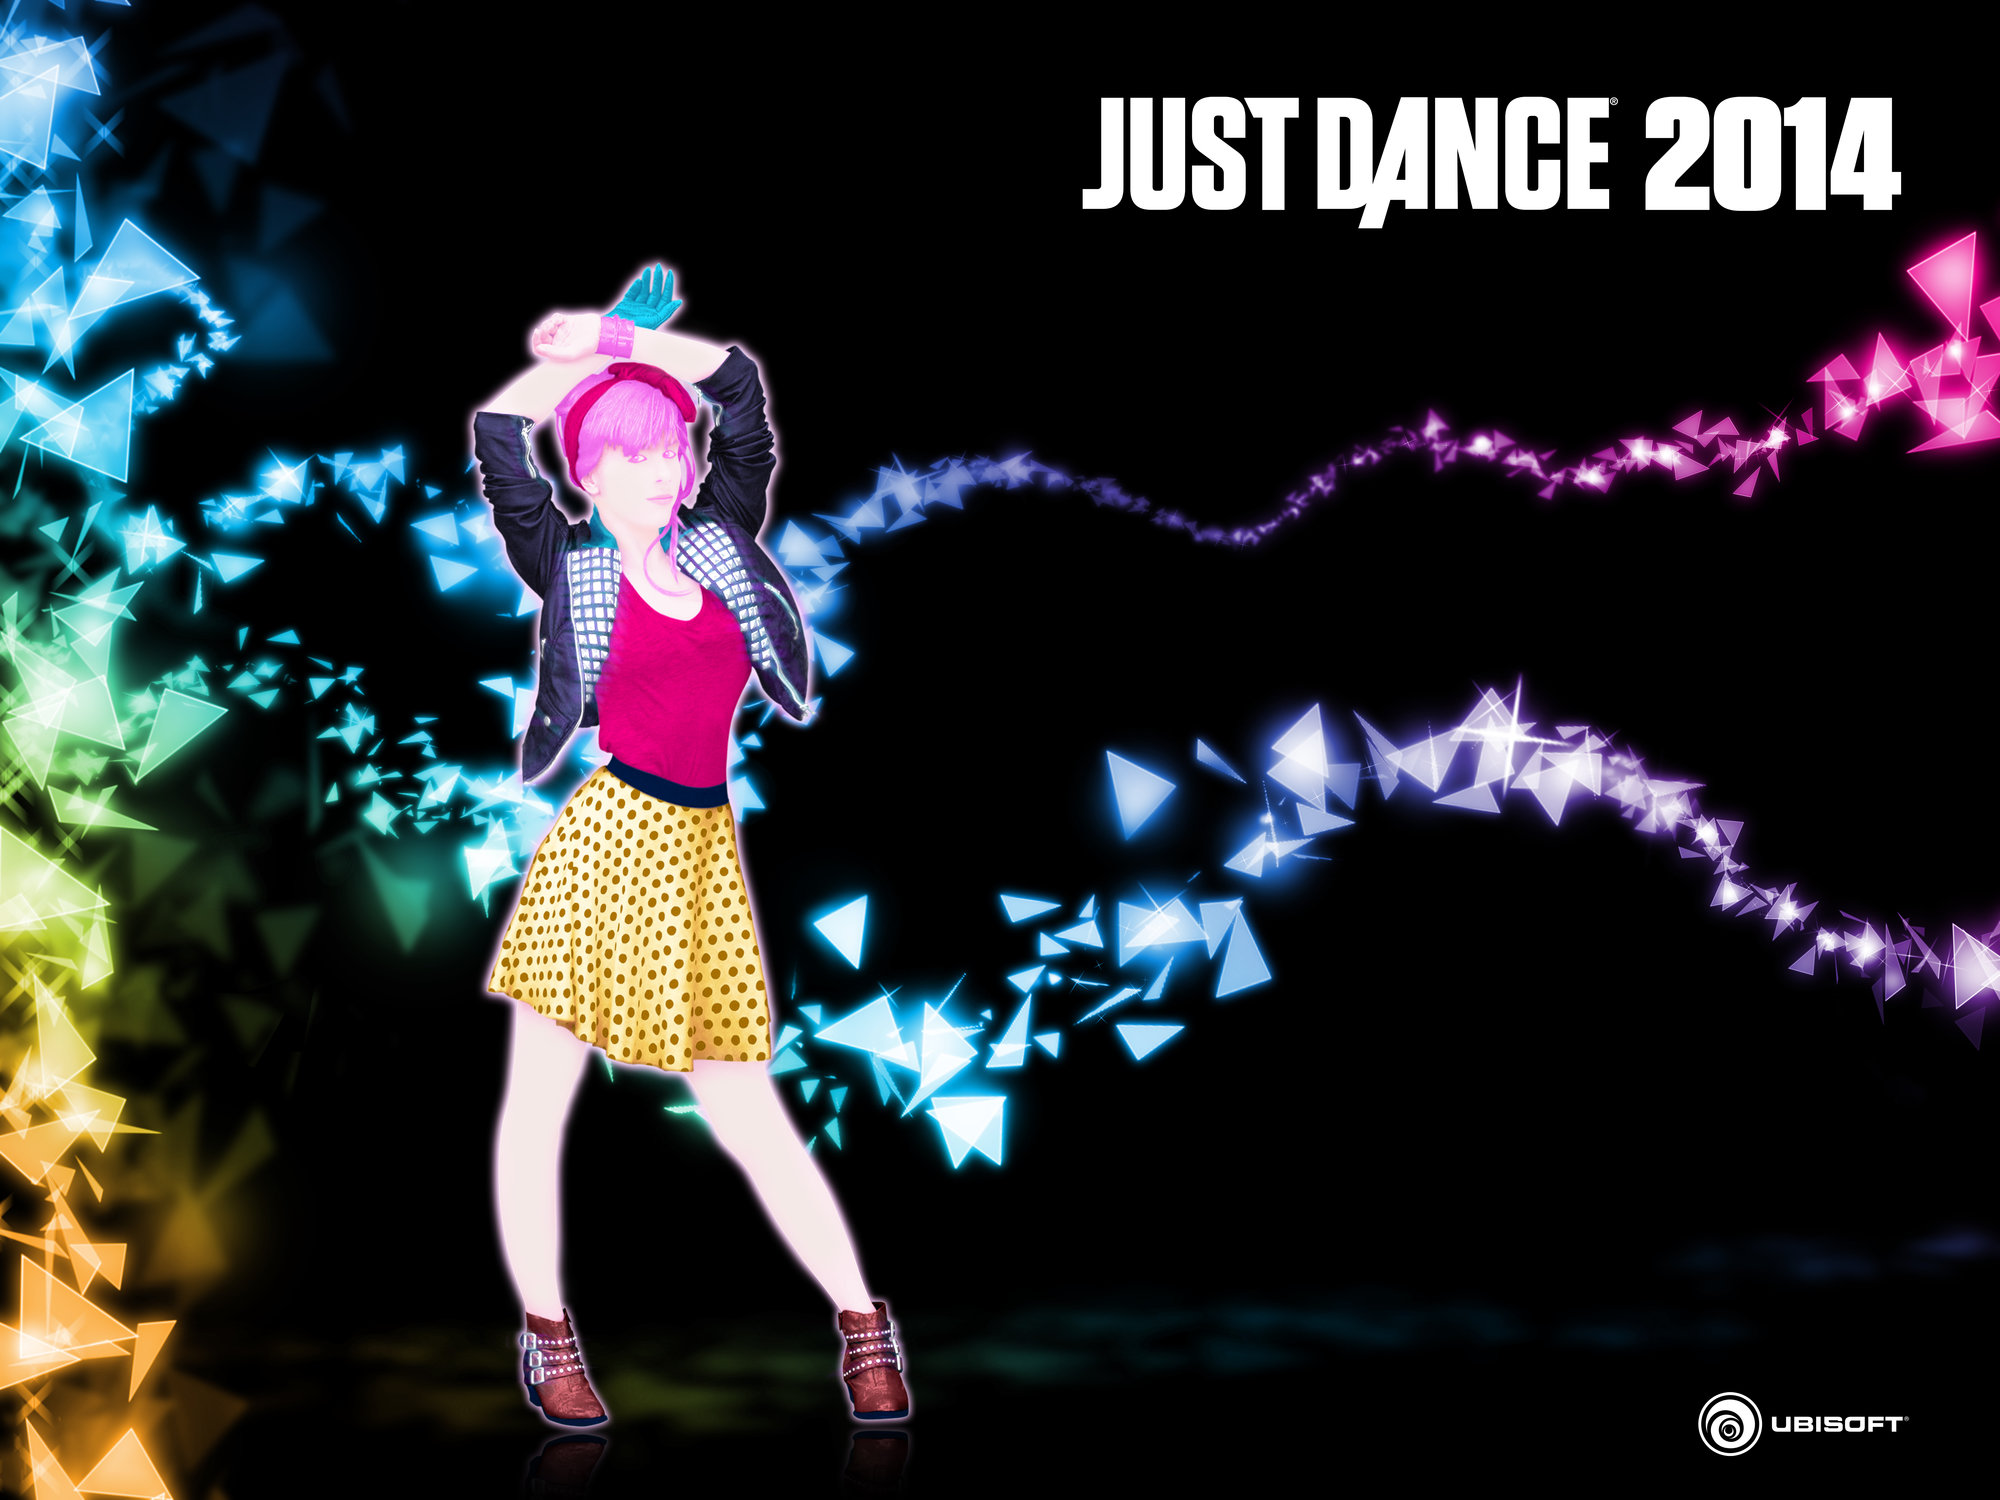 Gamescom Shakes Its Booty With Just Dance 2014